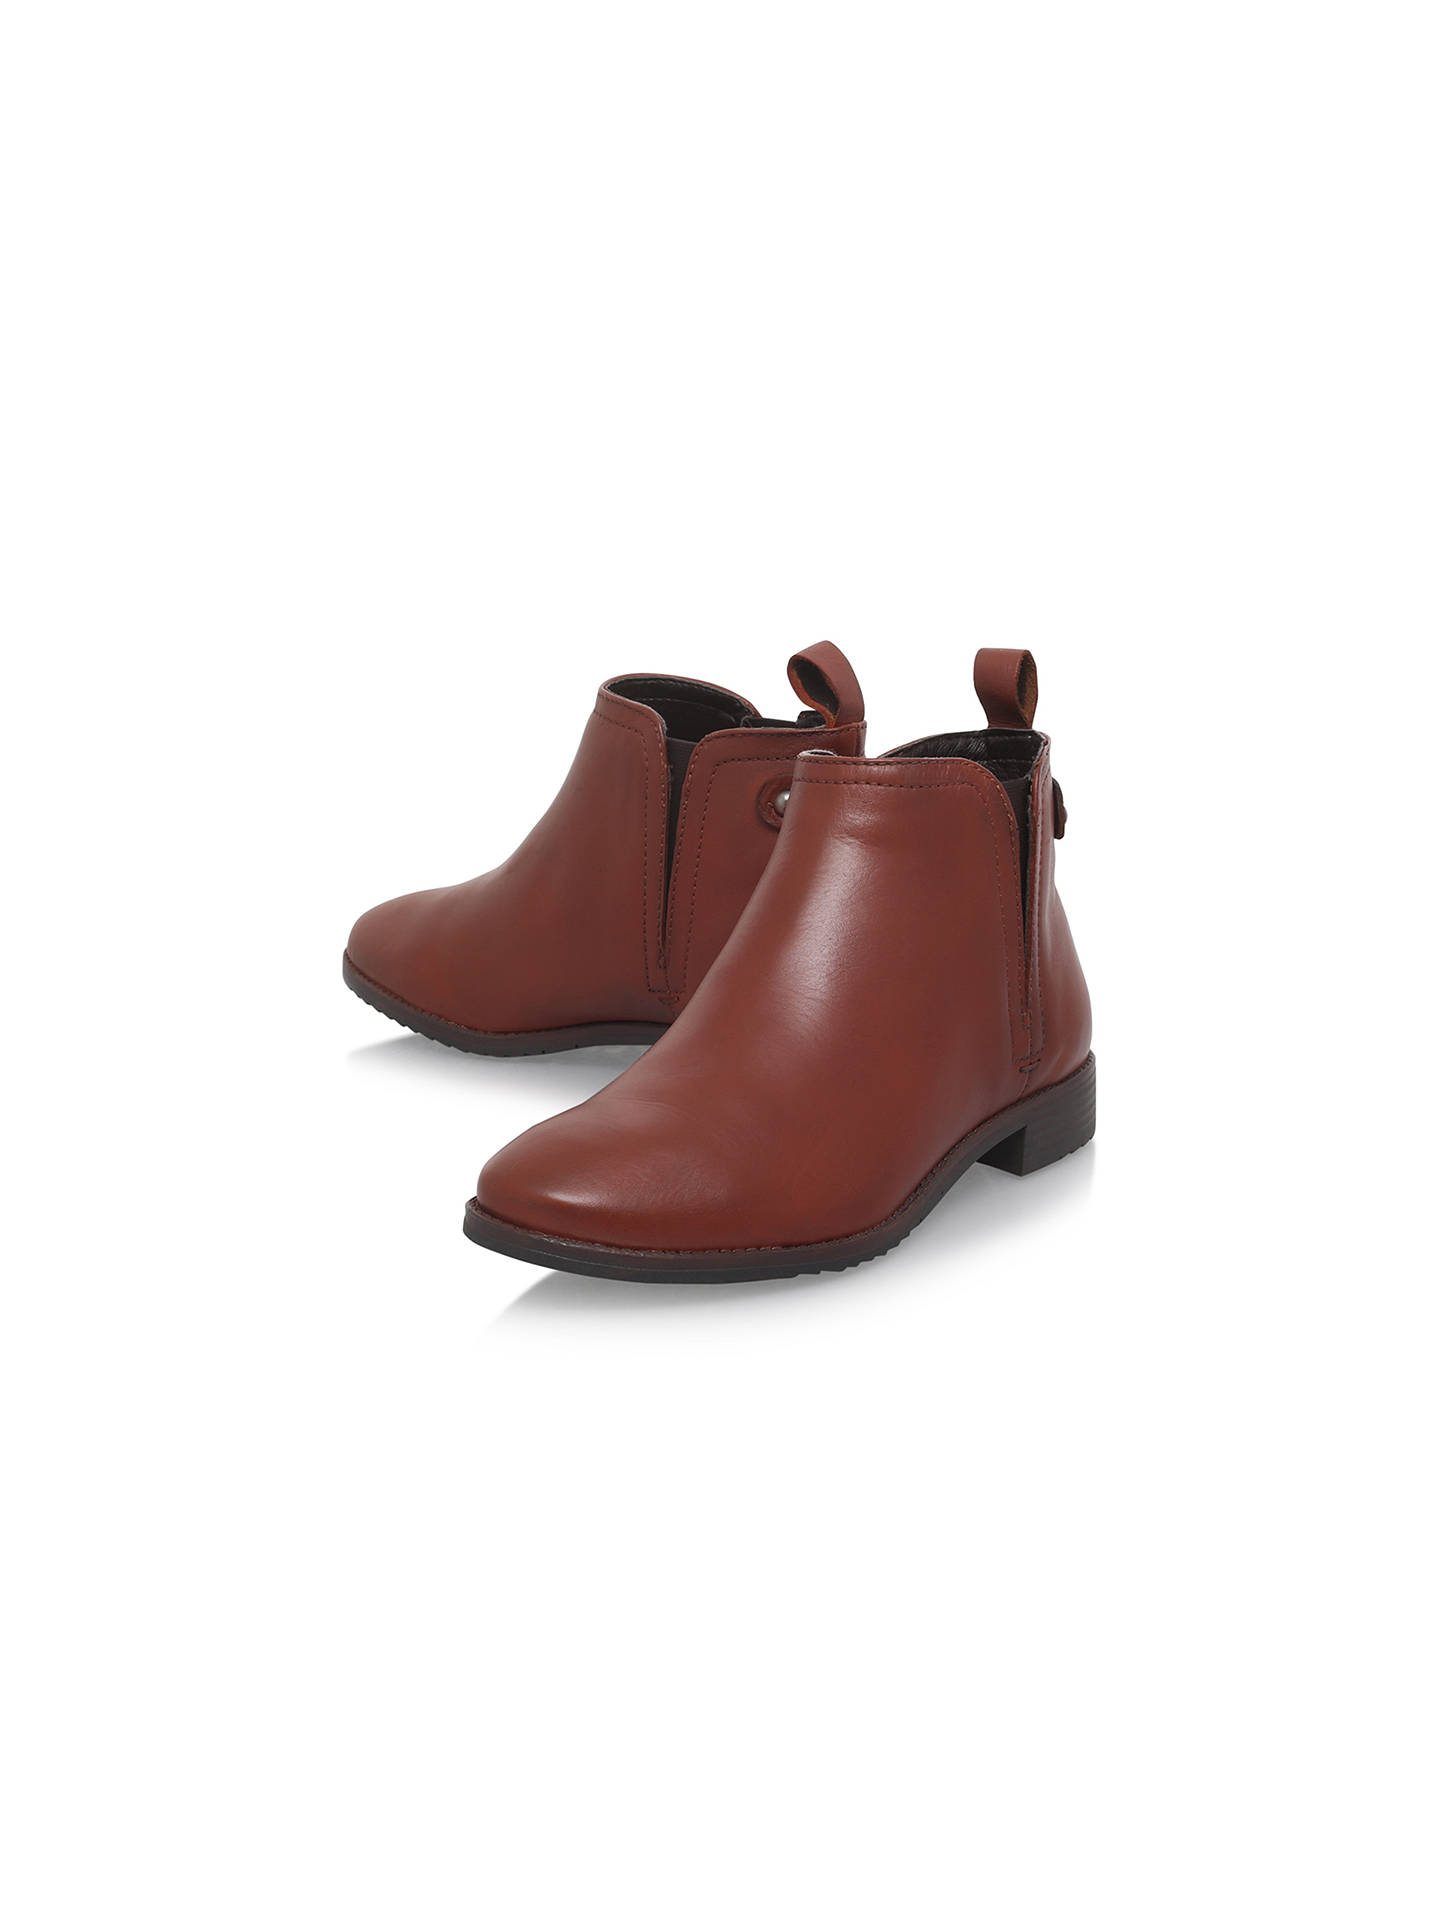 Buy Carvela Comfort Rex Pull On Ankle Boots, Tan, 5 Online at johnlewis.com